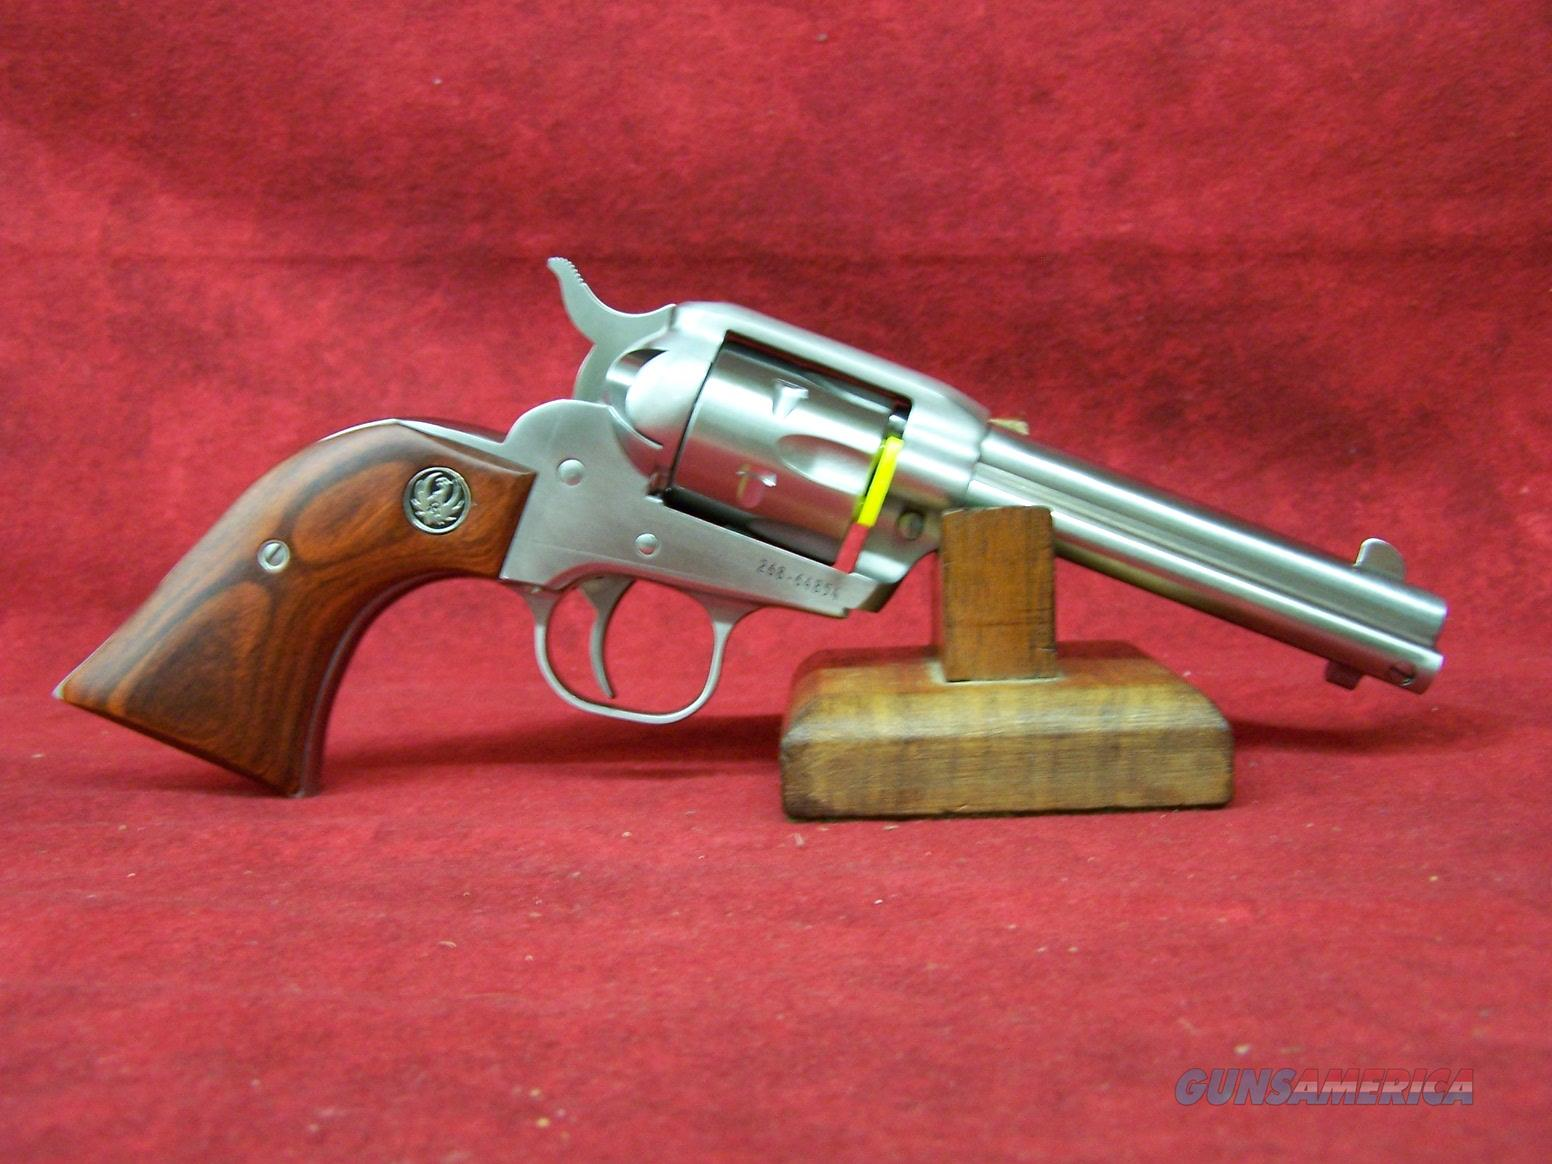 Ruger Single Six Convertible Revolver 22LR / 22 WMRF LIPSEY'S EXCLUSIVE (00678)  Guns > Pistols > Ruger Single Action Revolvers > Single Six Type